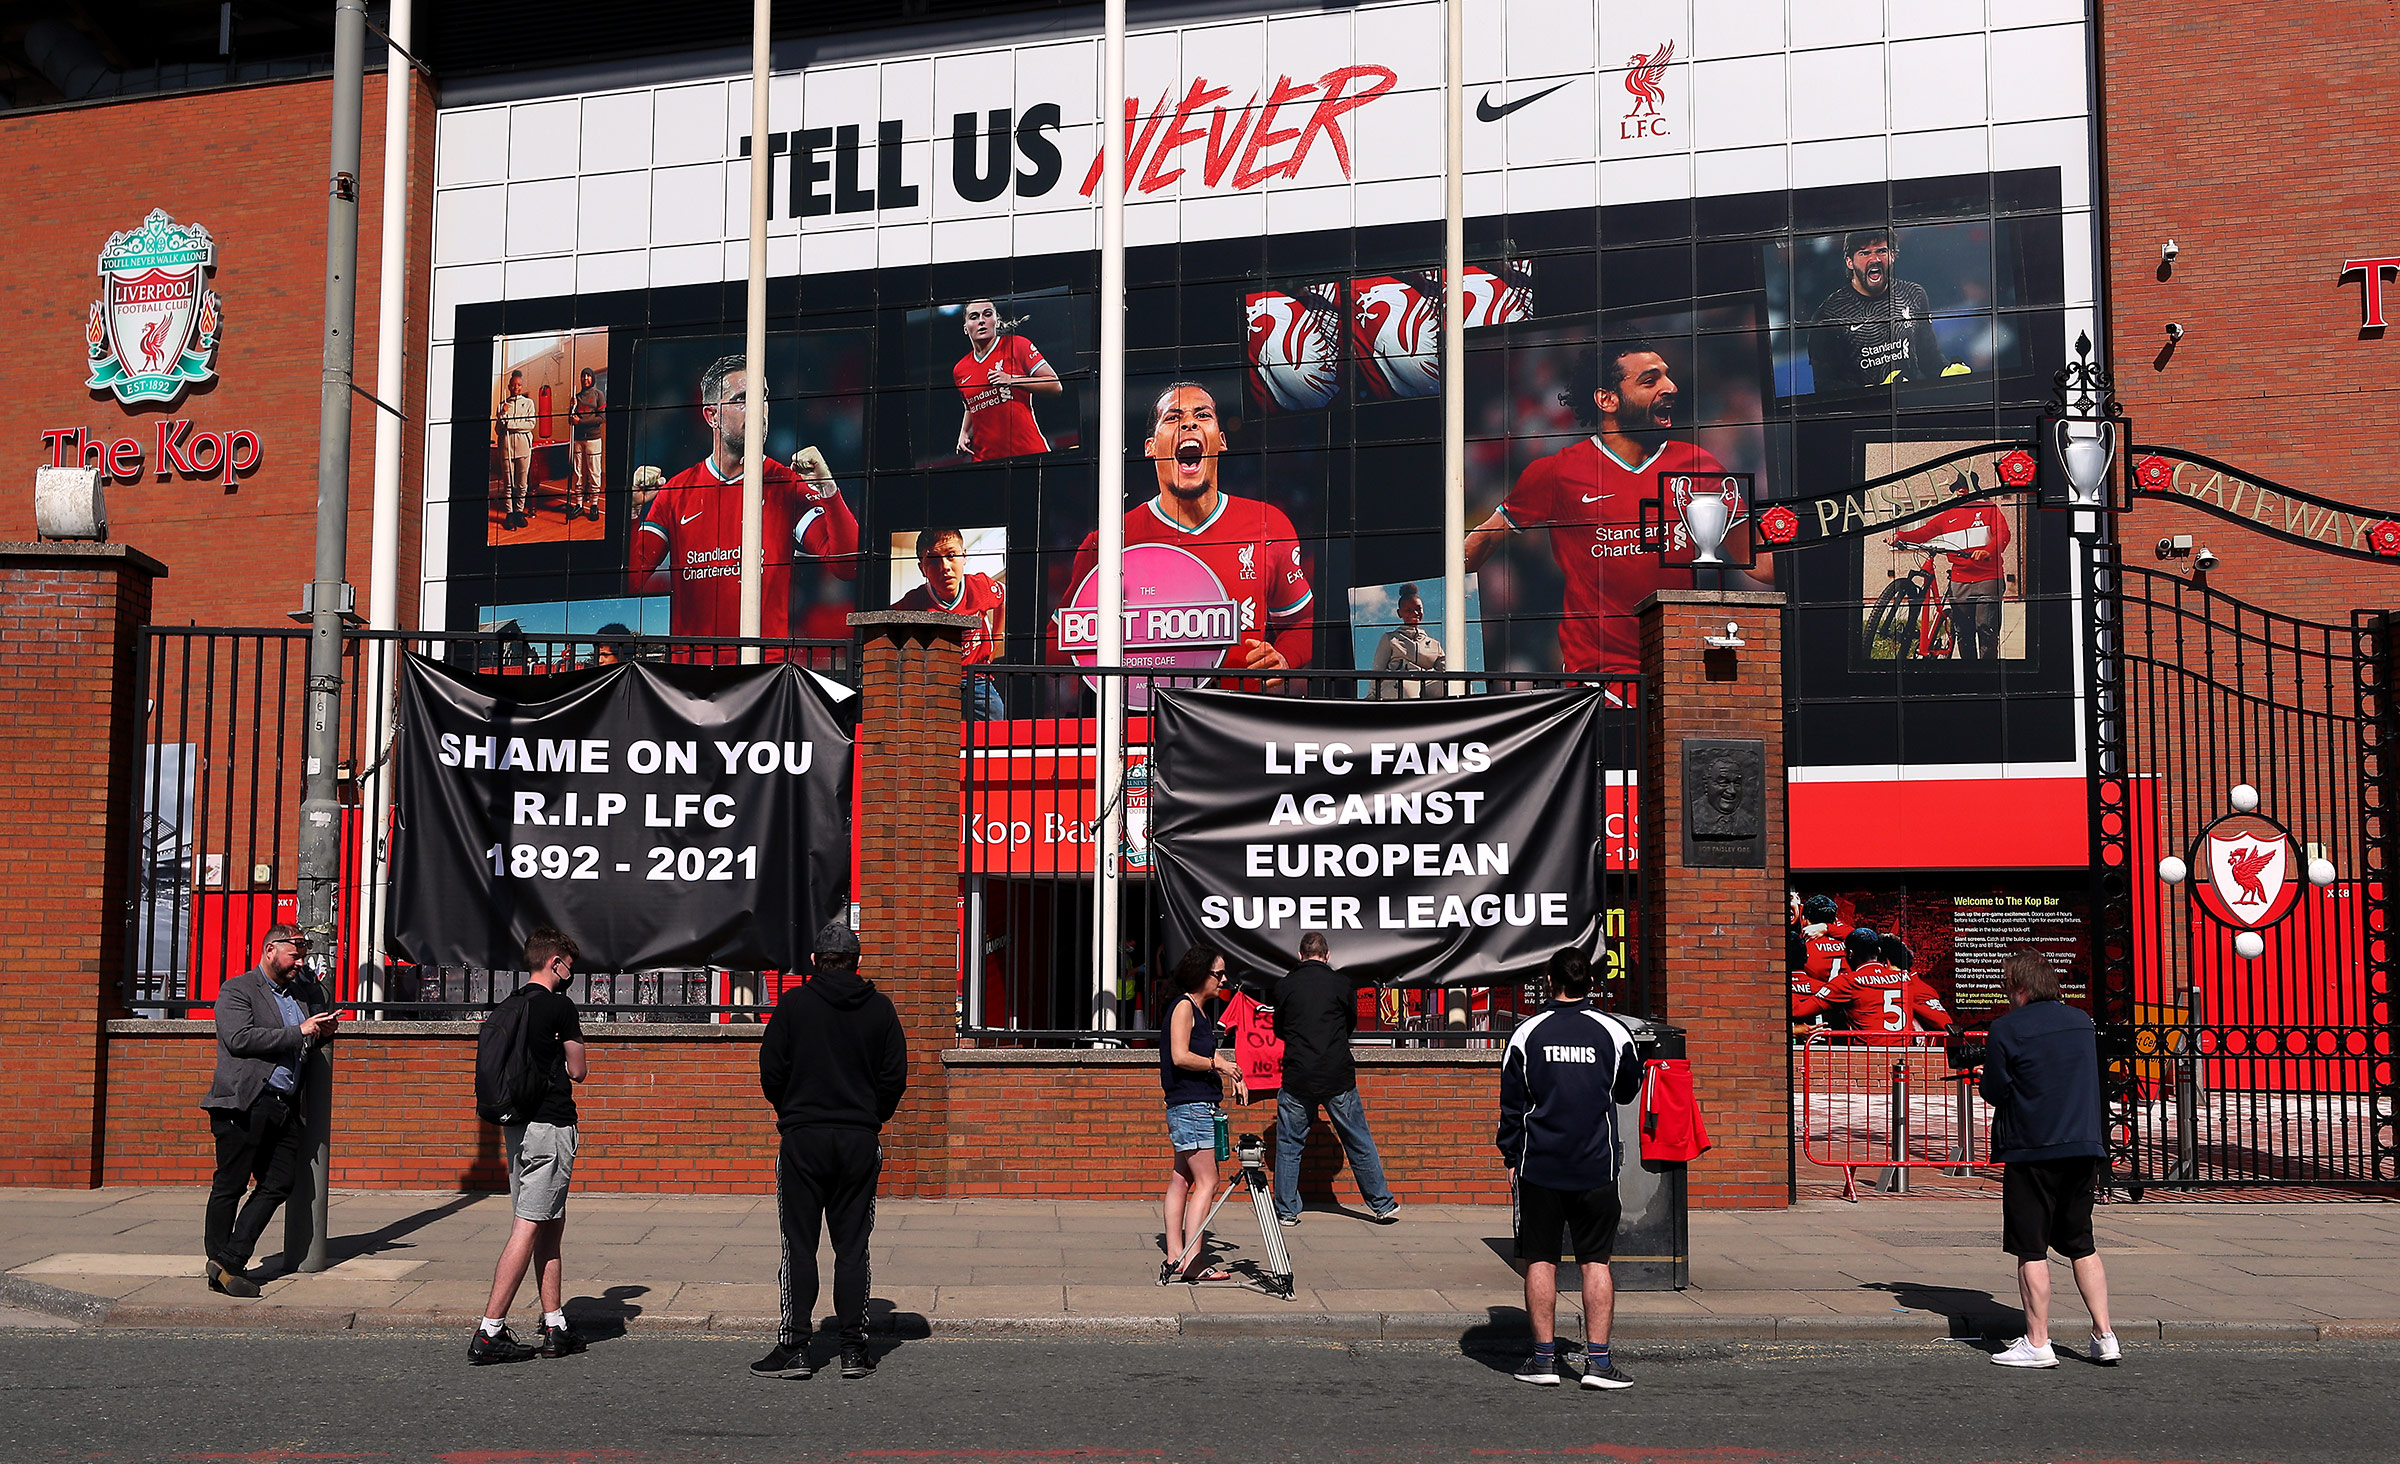 Banners are placed outside of Anfield, home of Liverpool FC, by fans to protest against the team's decision to join the European Super League.